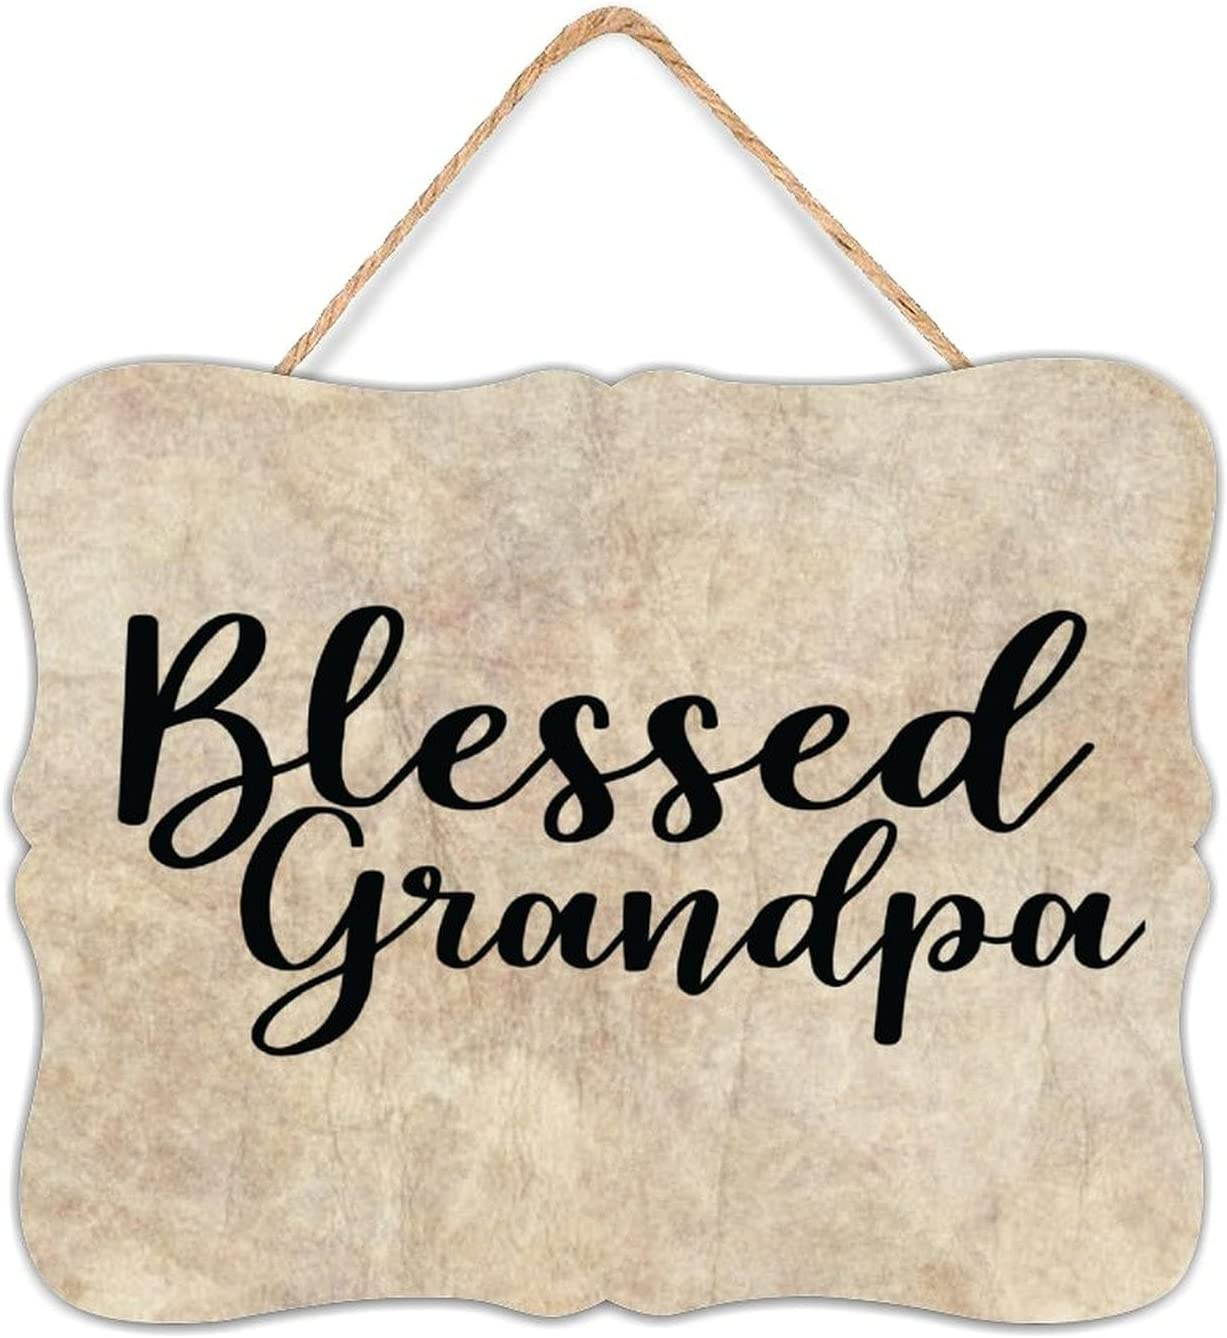 Free Shipping Cheap Bargain Gift 8X10 Inch 20 X 25 Cm Rustic Wall Wood Sign Inventory cleanup selling sale Blesse Home Decor